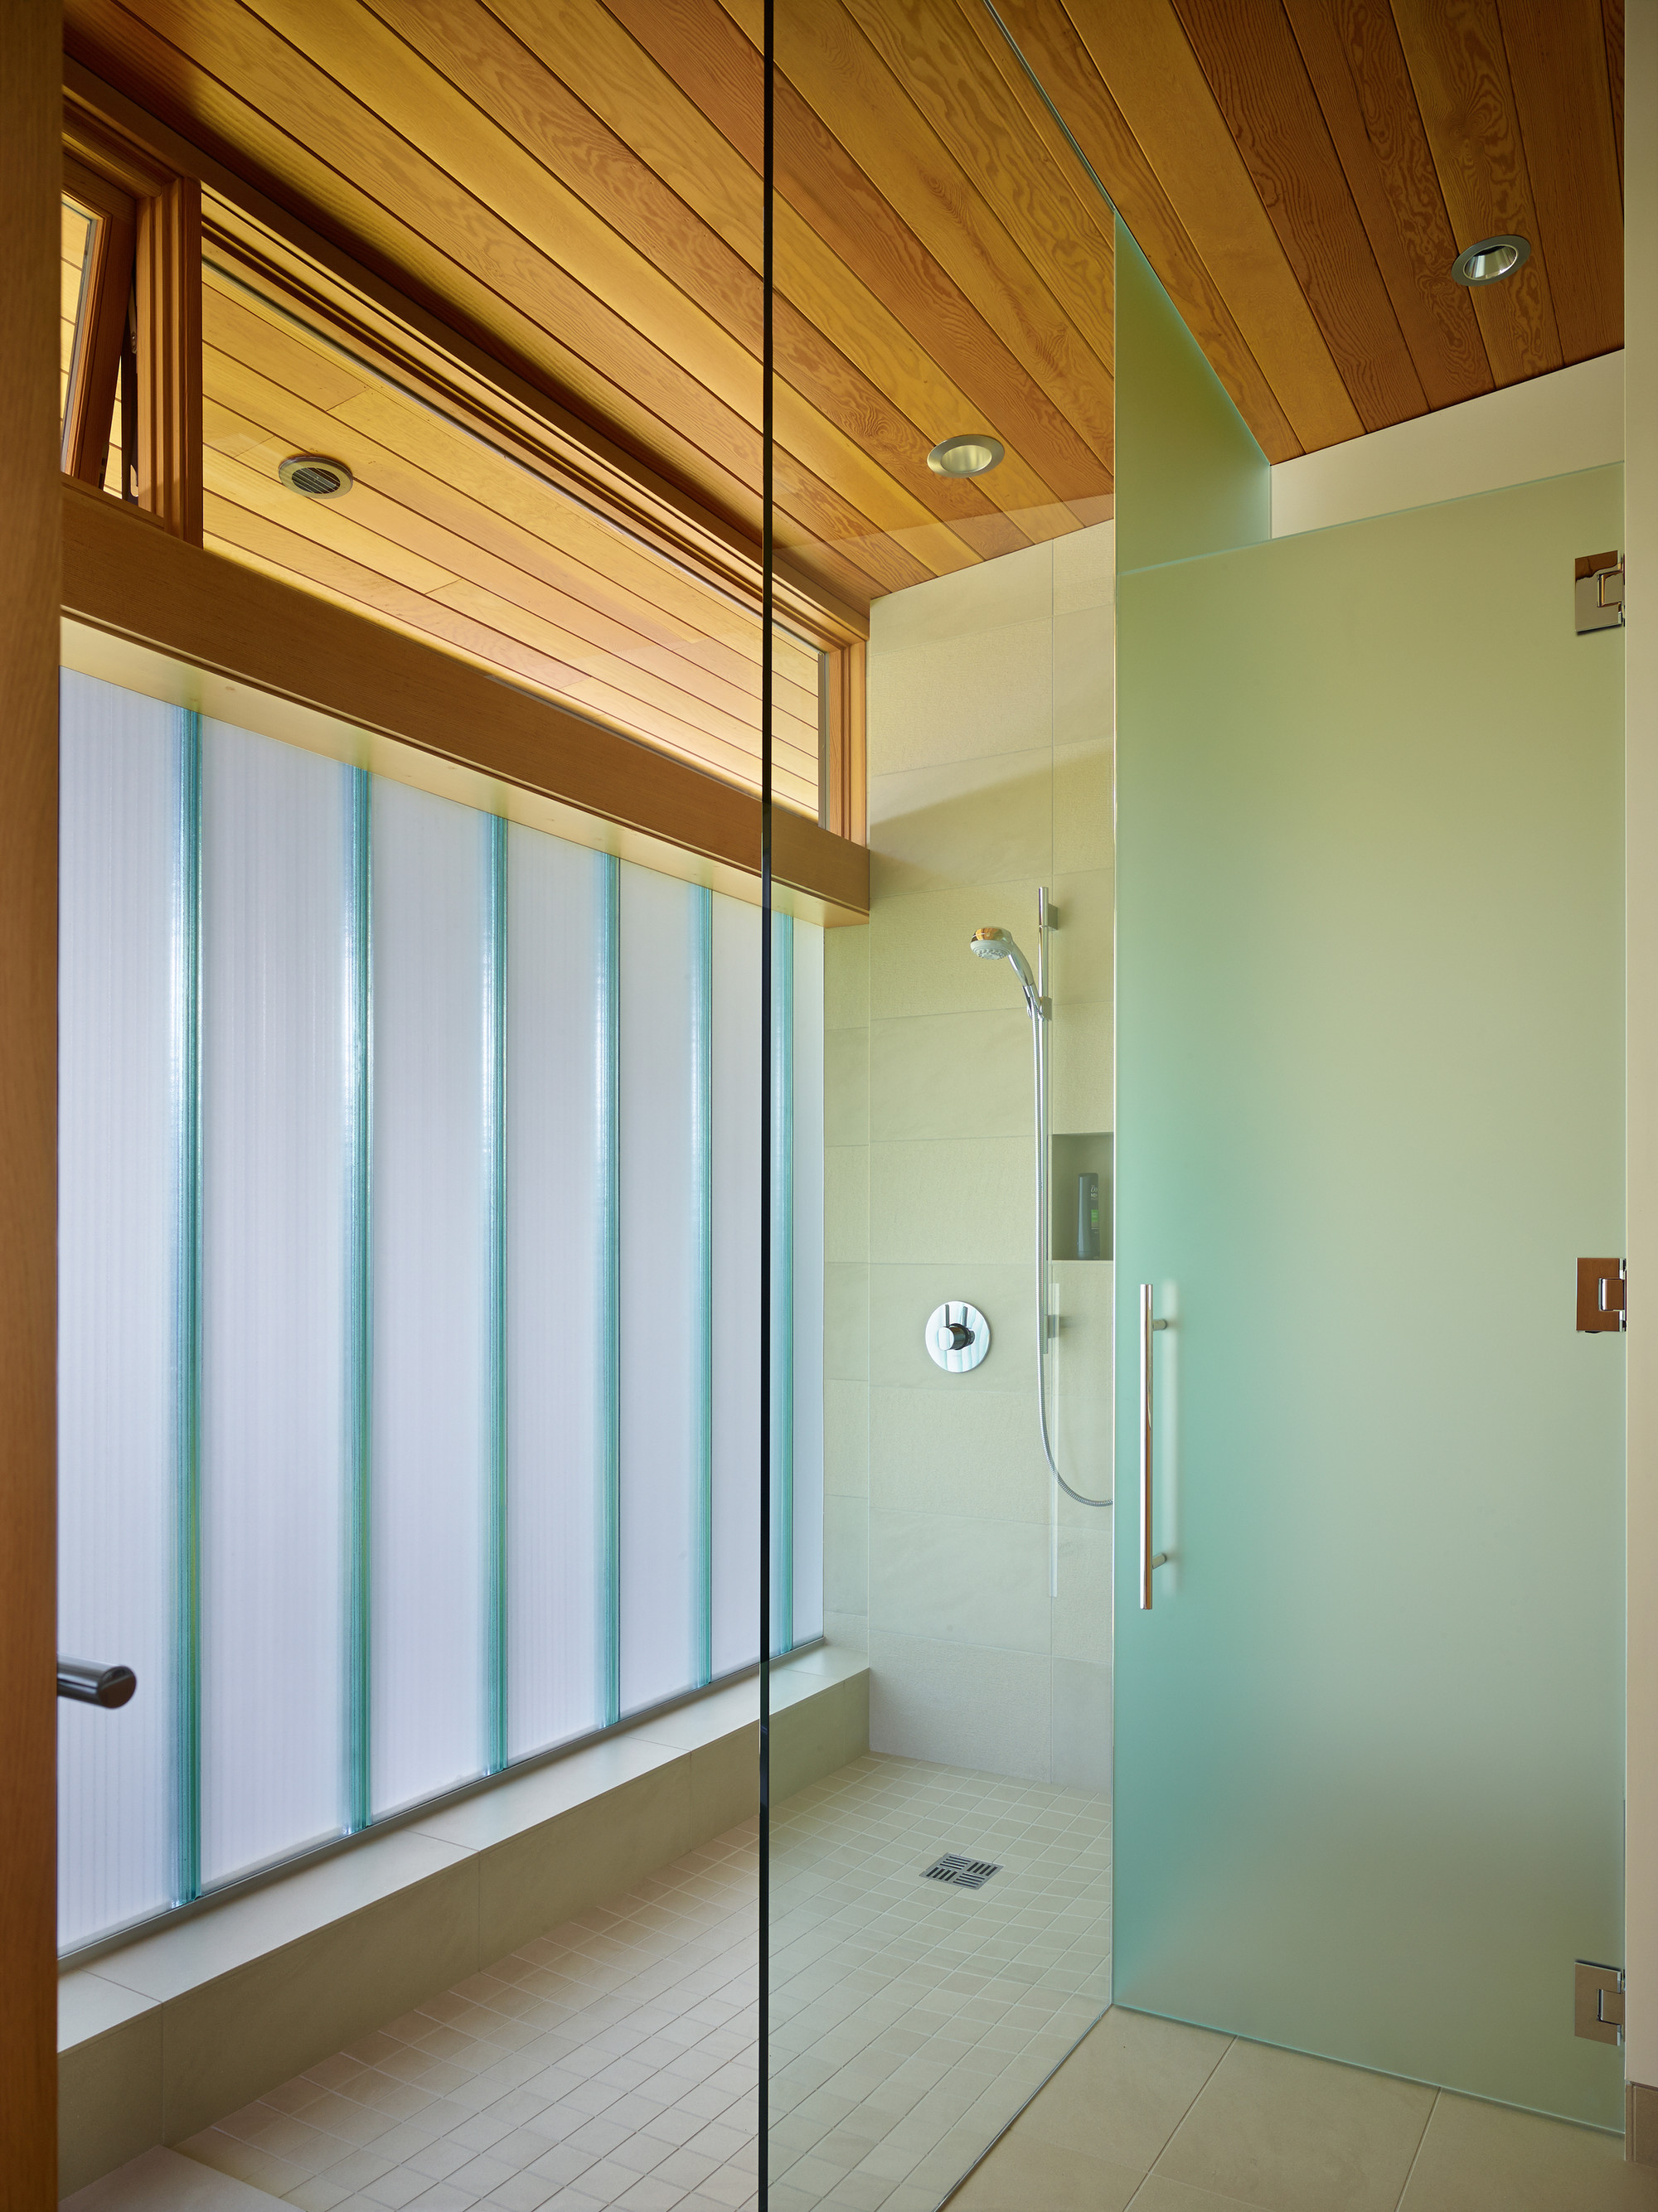 Glass Shower Tub Doors - Mauorel.com